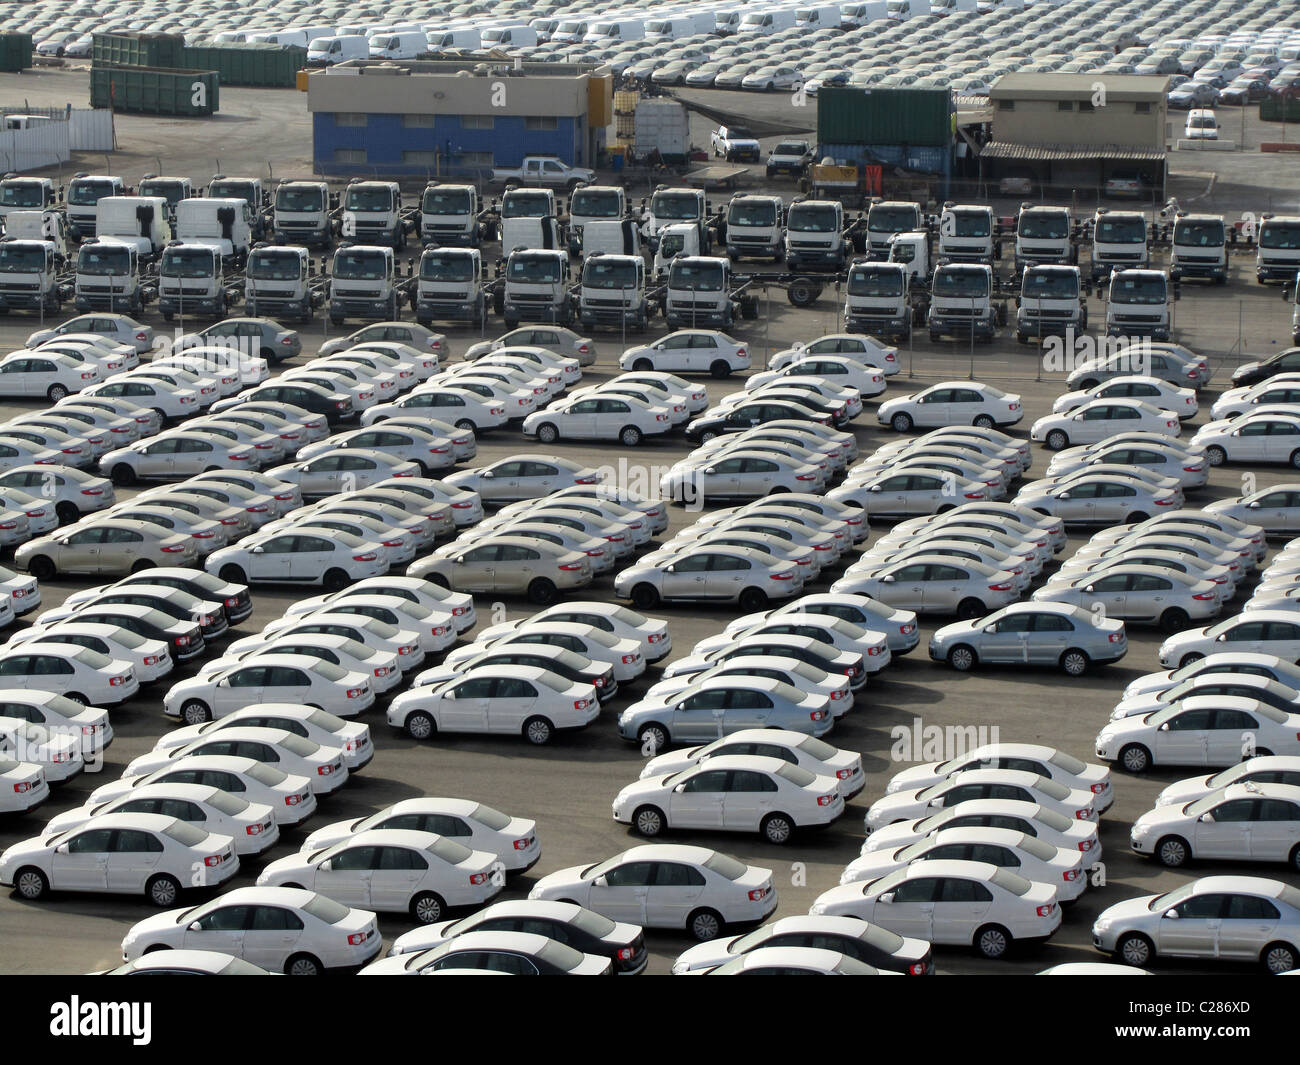 Car park with cars ready to sell, USA Stock Photo: 35831109 - Alamy